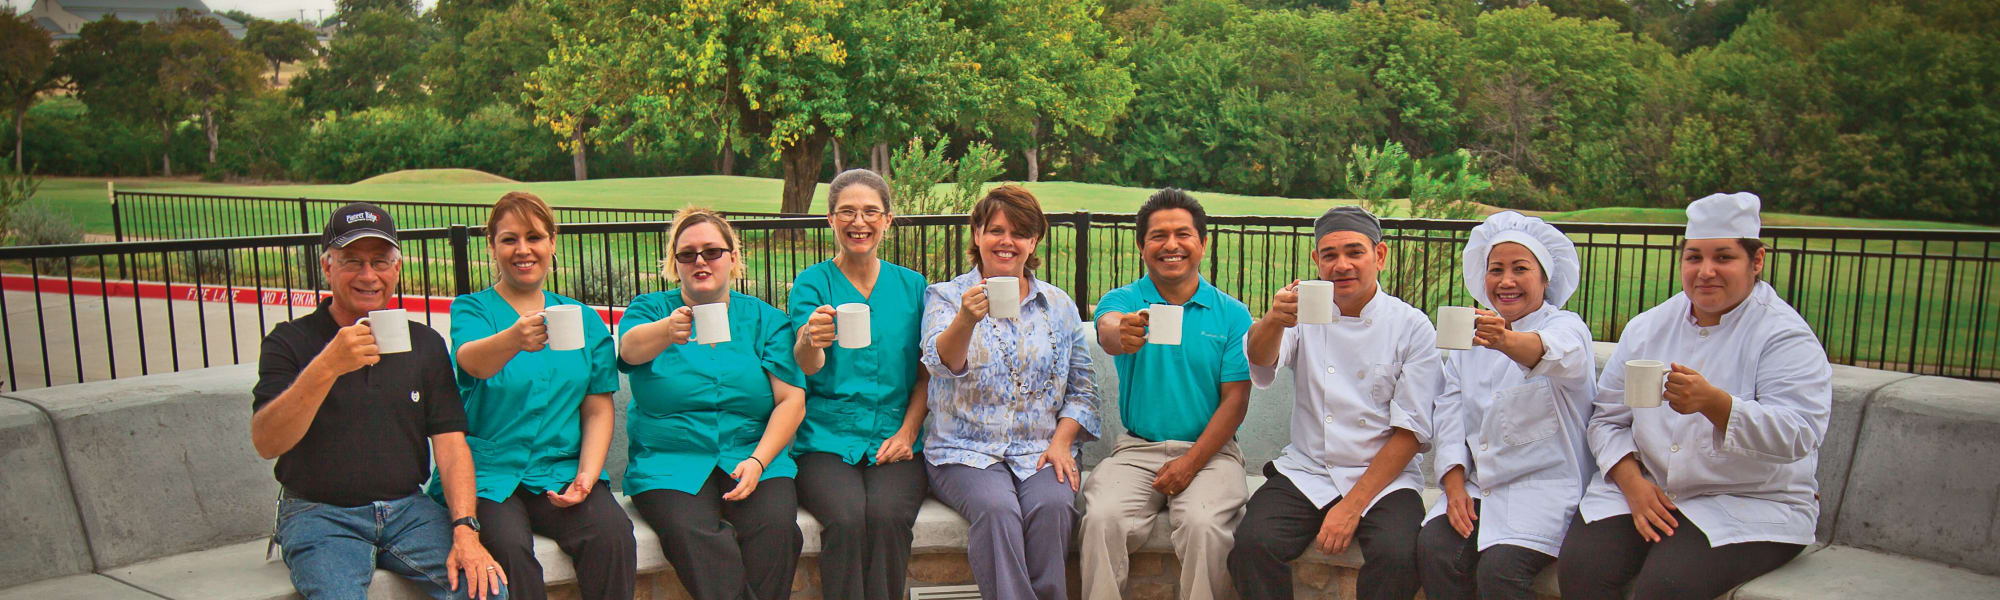 Careers at Maple Ridge Gracious Retirement Living in Cedar Park, Texas